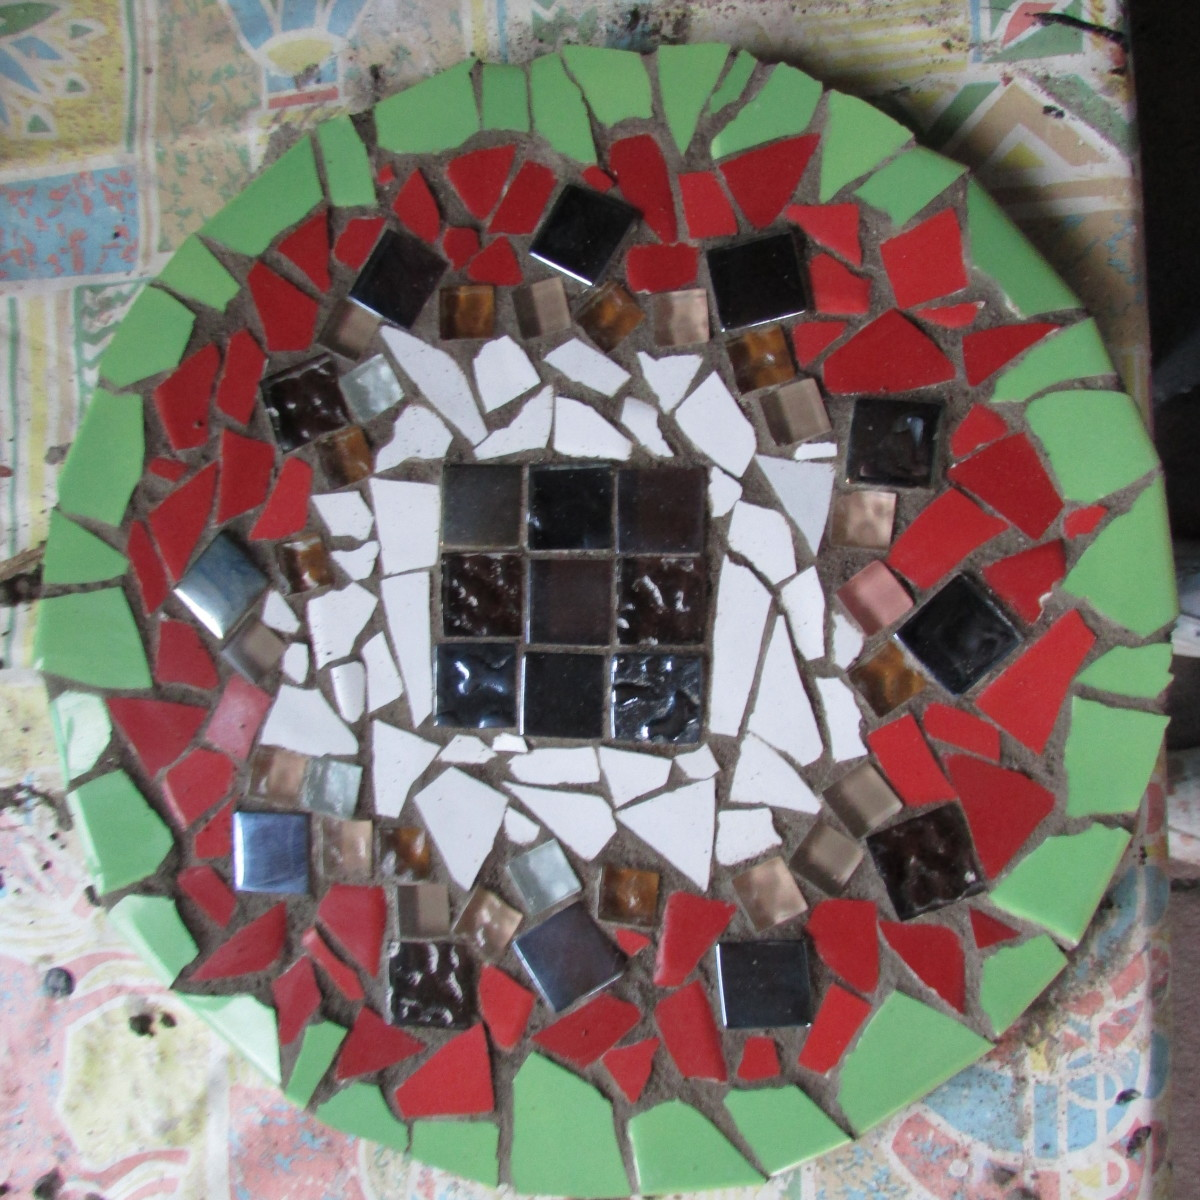 How To Make Mosaic Designs For A Table With Ceramic Tiles Feltmagnet Crafts